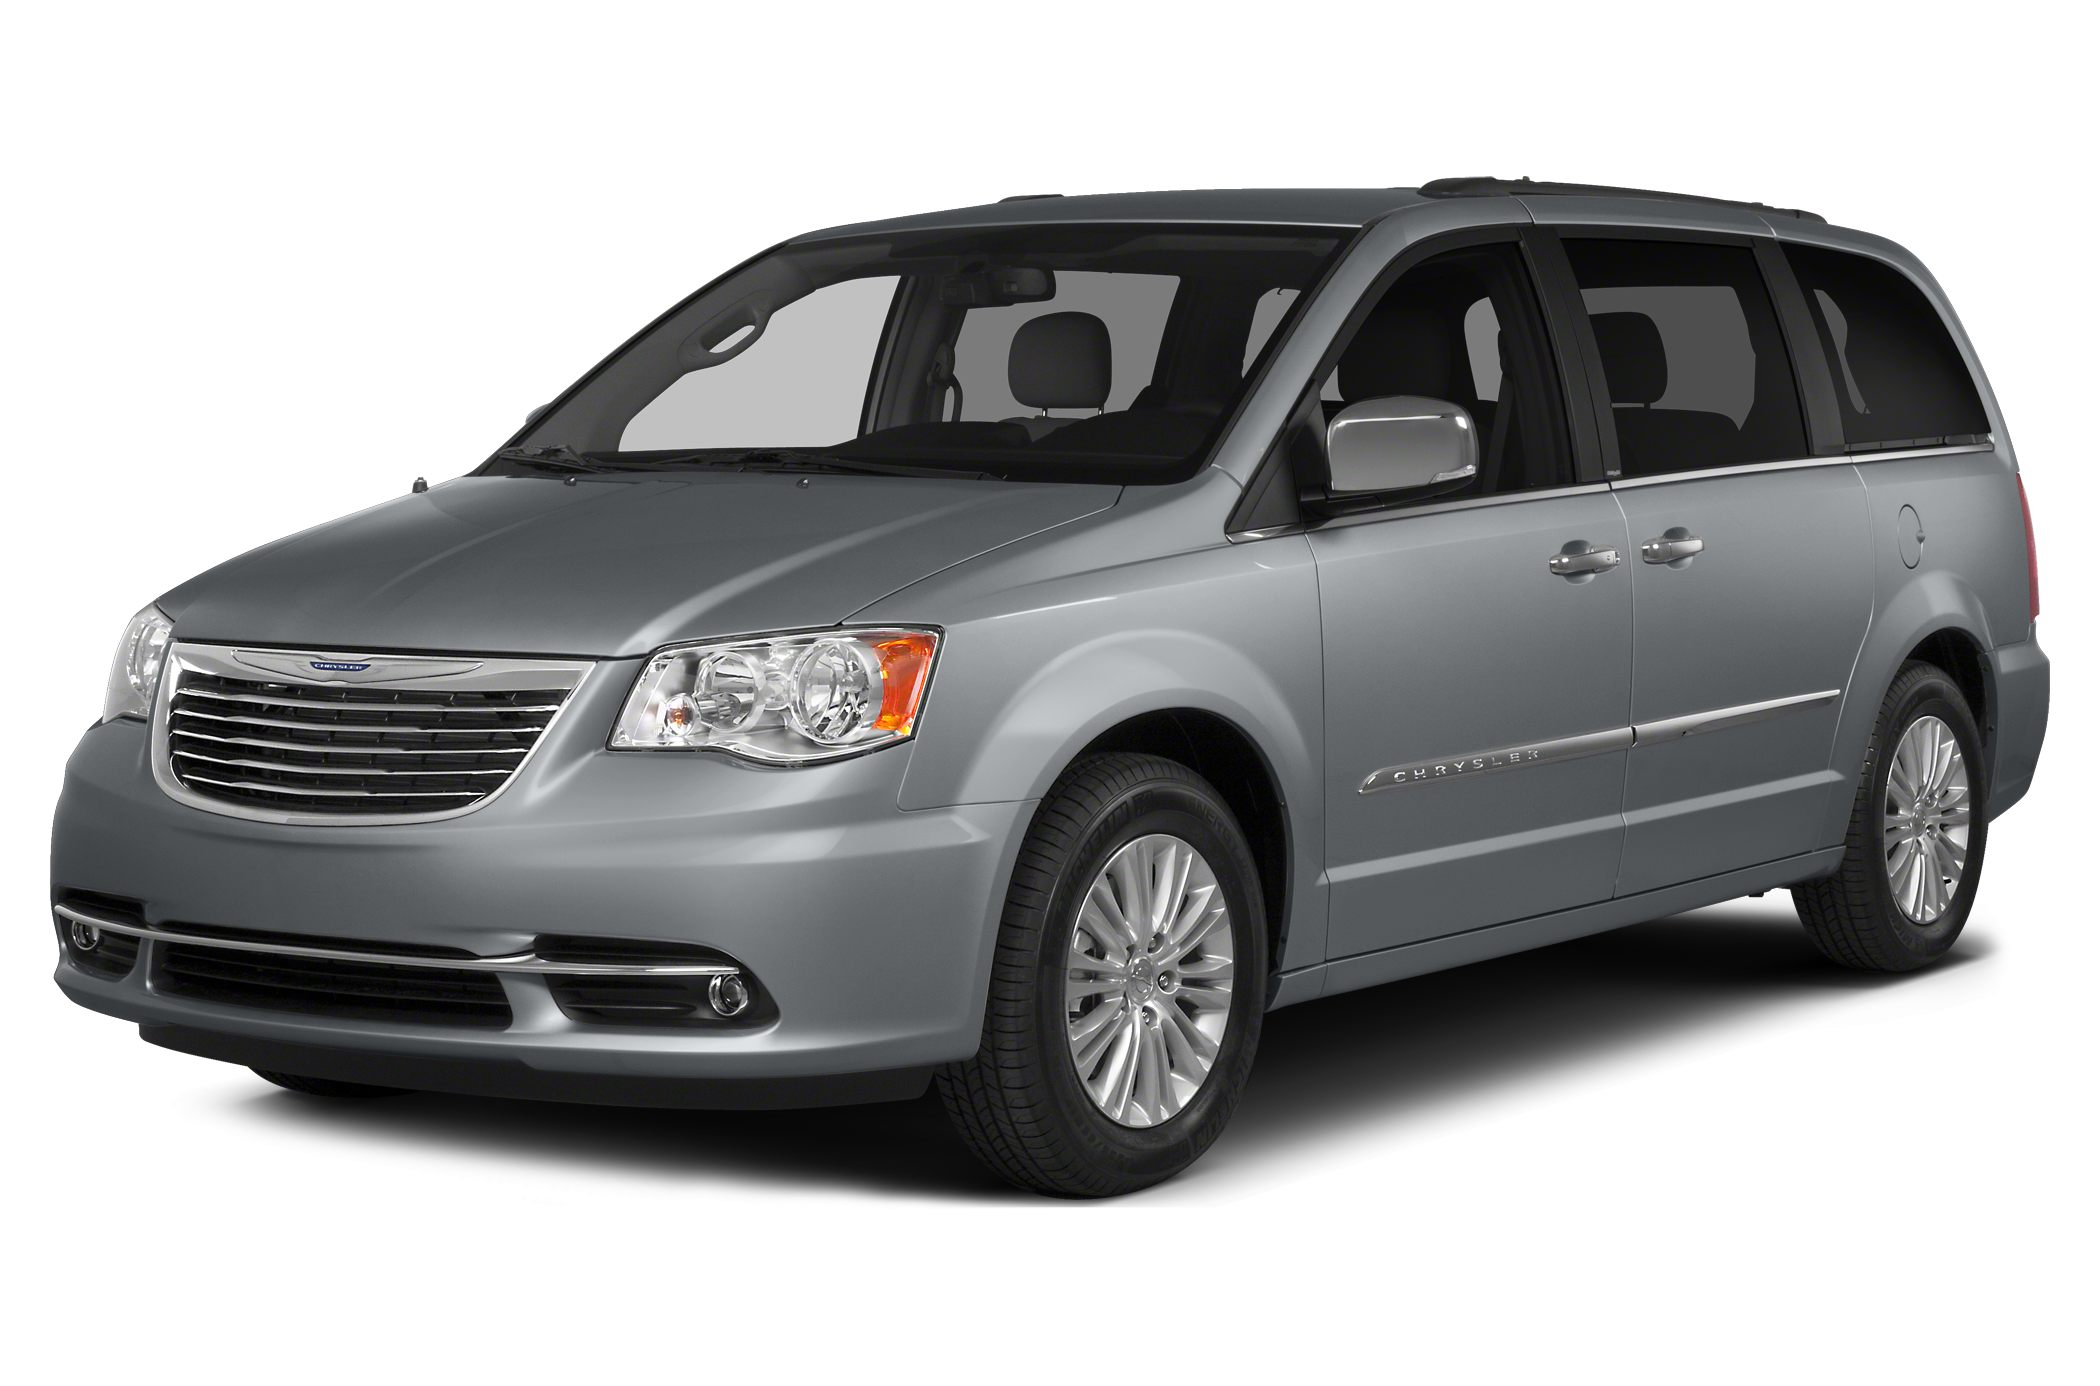 2015 Chrysler Town & Country Touring Minivan for sale in Waterford for $32,755 with 12 miles.